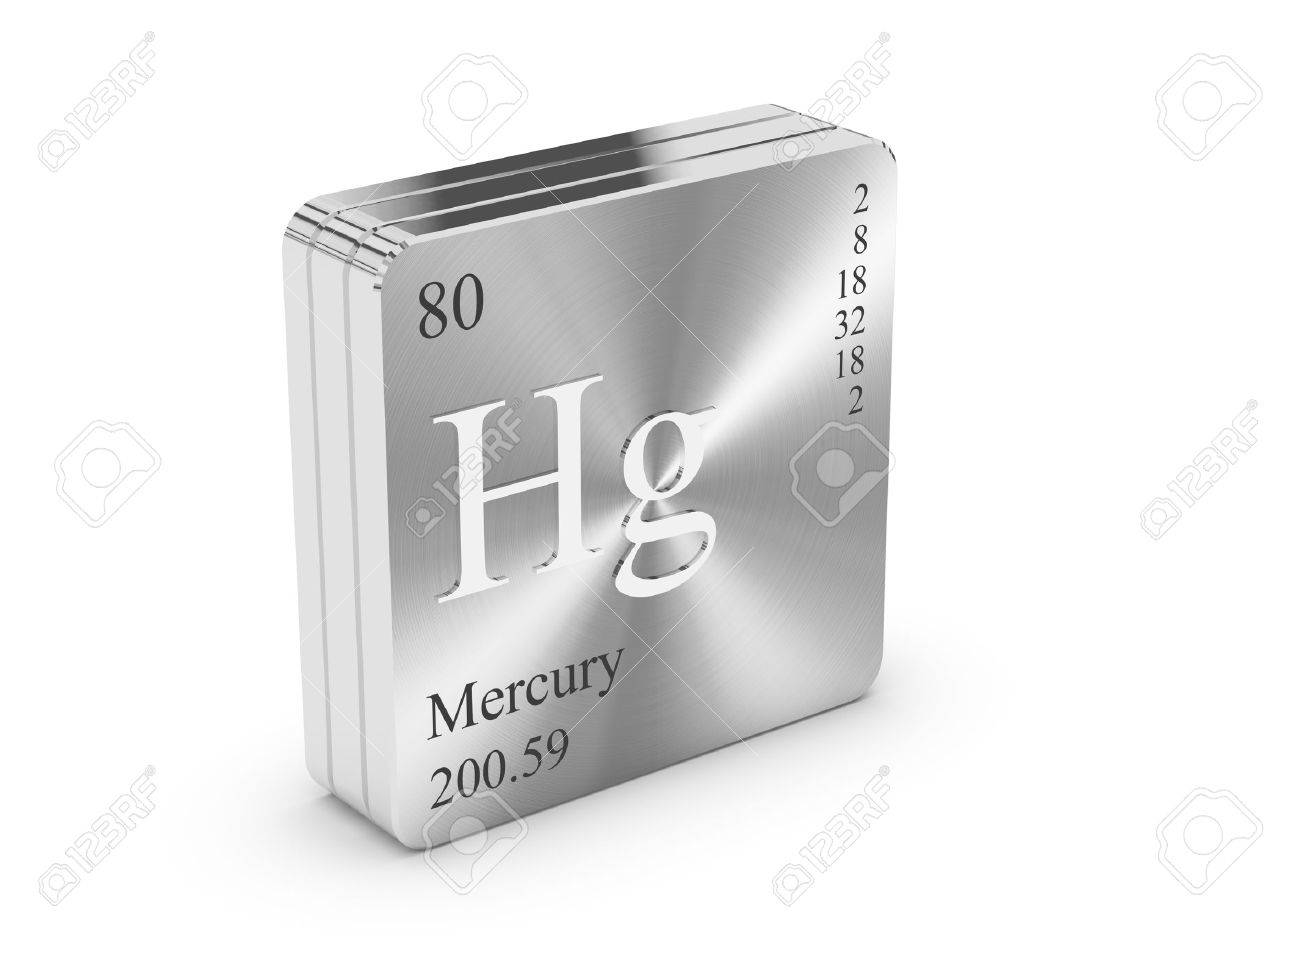 Mercury element of the periodic table on metal steel block stock mercury element of the periodic table on metal steel block stock photo 12150433 gamestrikefo Images